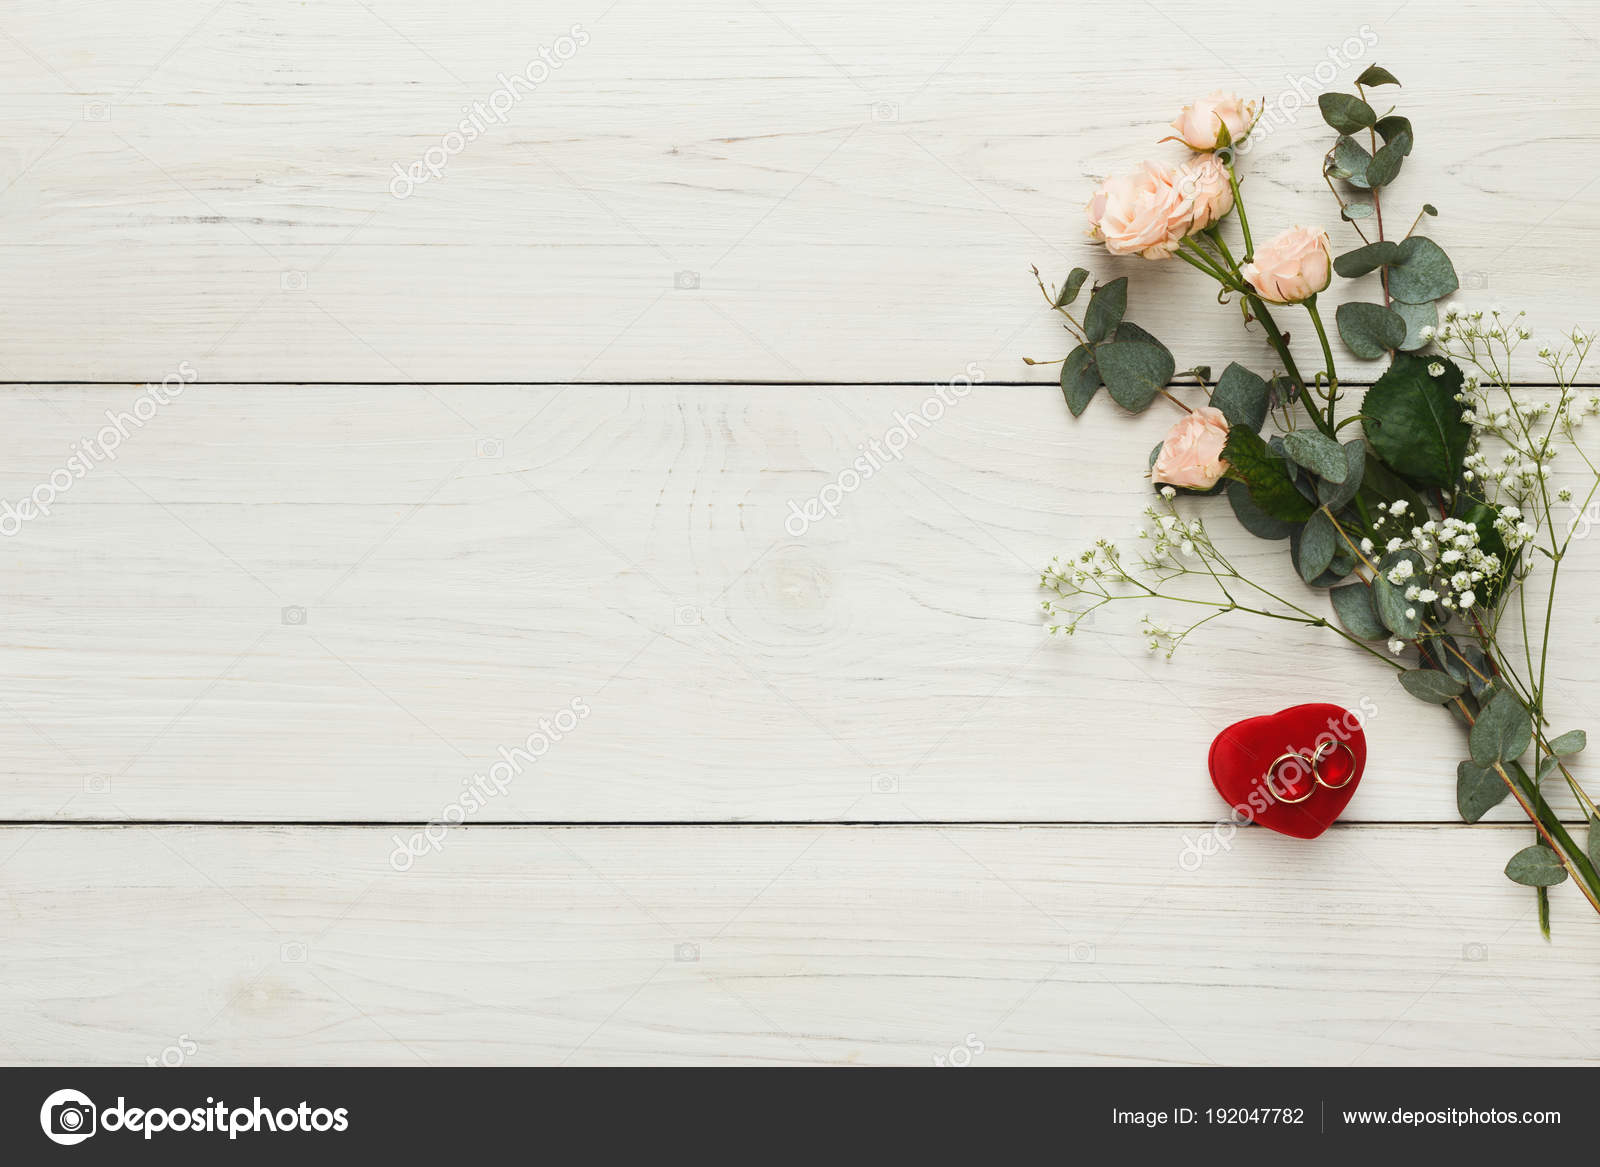 Golden Wedding Rings And Pink Roses On White Rustic Wood Top View Marriage Background With Copy Space Photo By Milkos